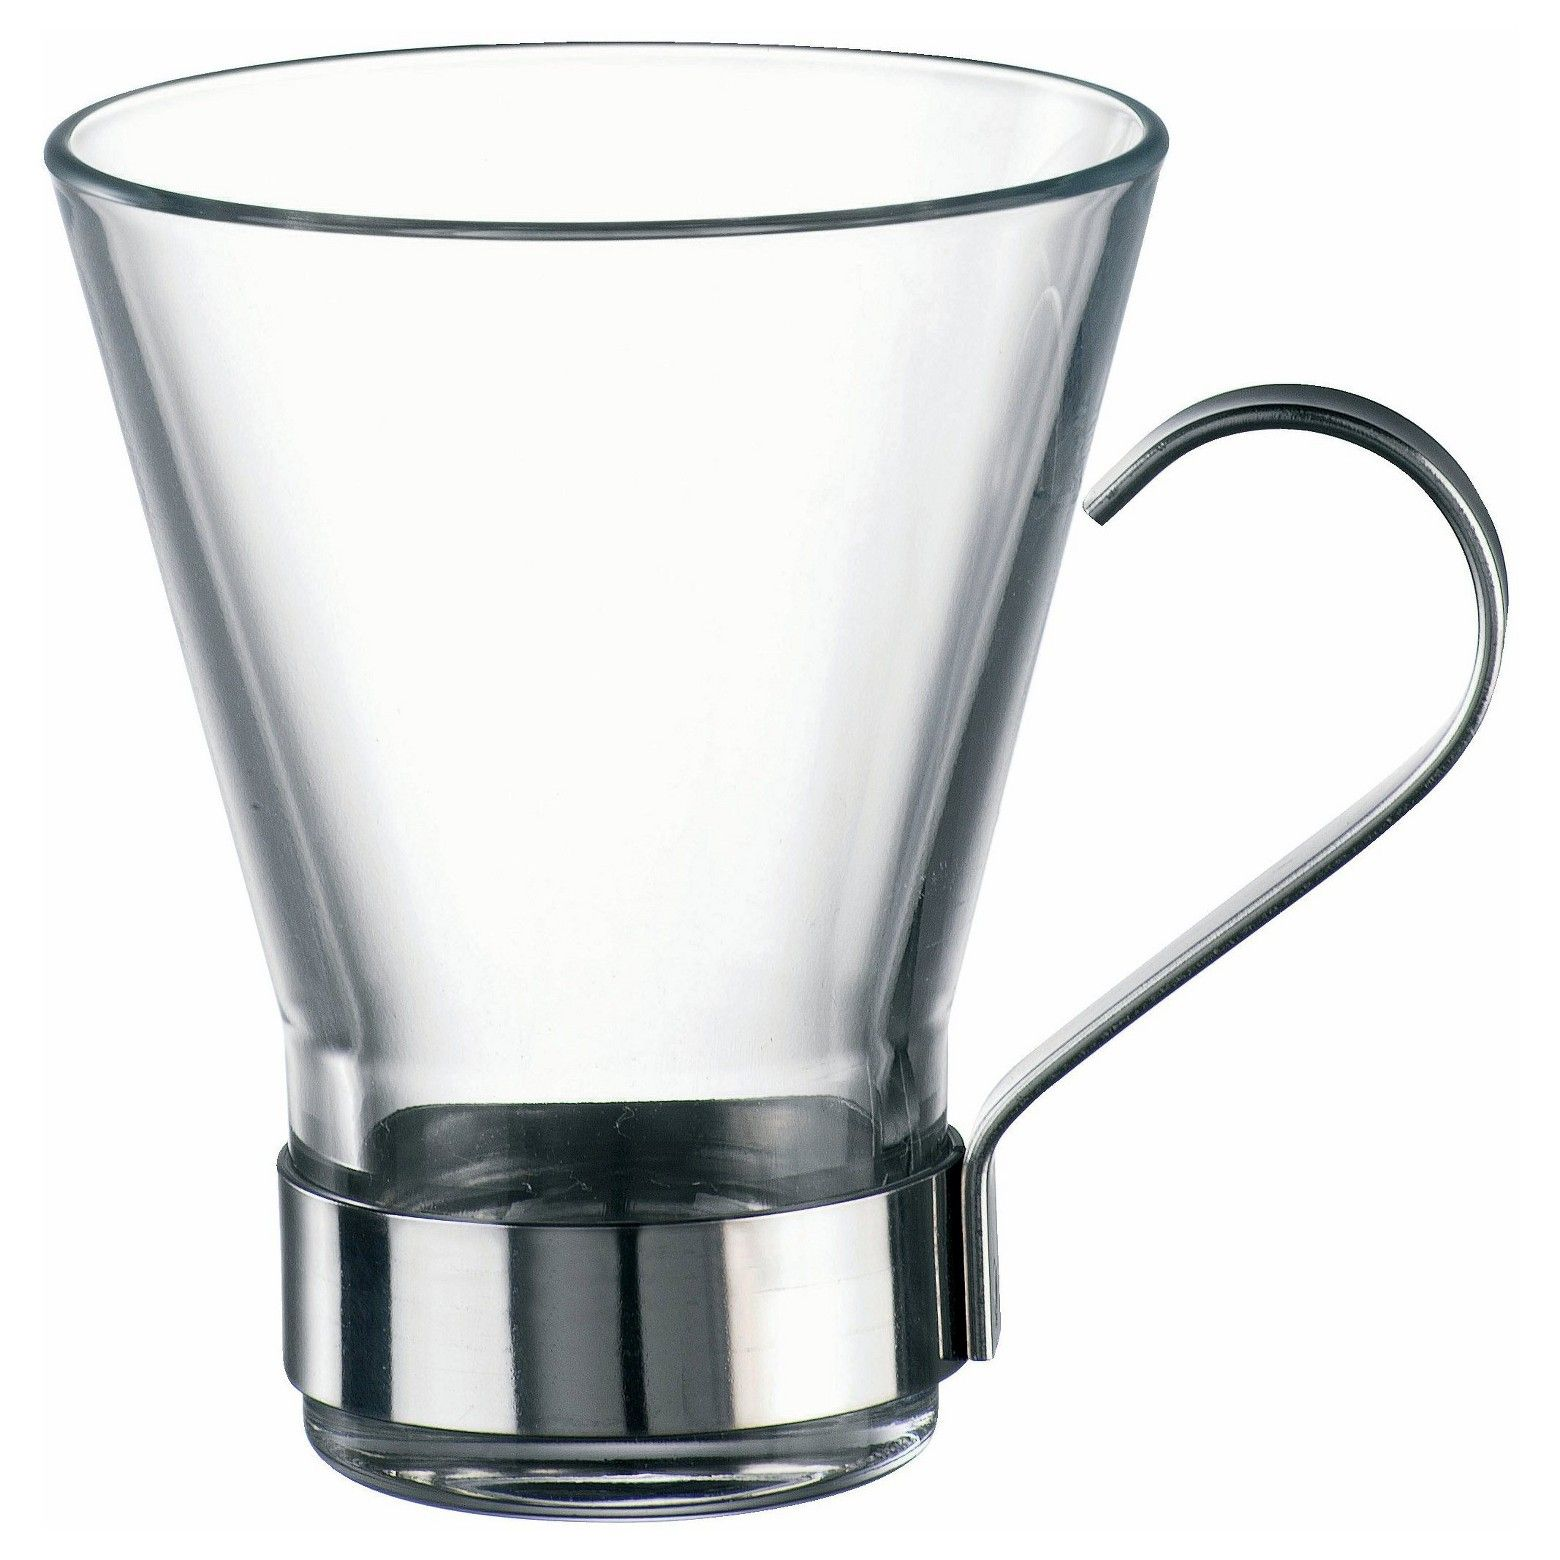 Made Of Durable Tempered Glass The Ypsilon Coffee Cup Is Perfect